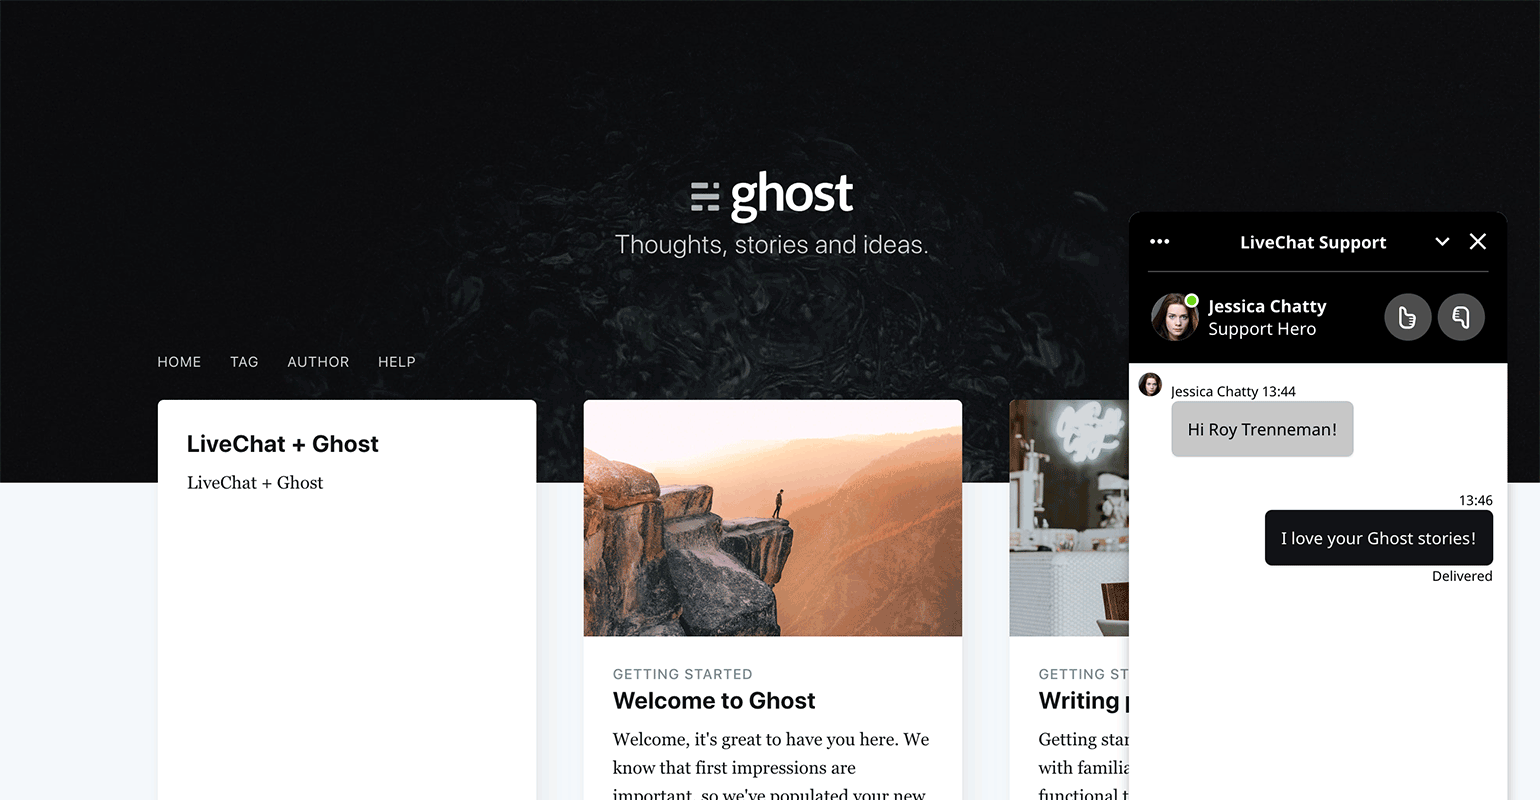 LiveChat widget on Ghost website